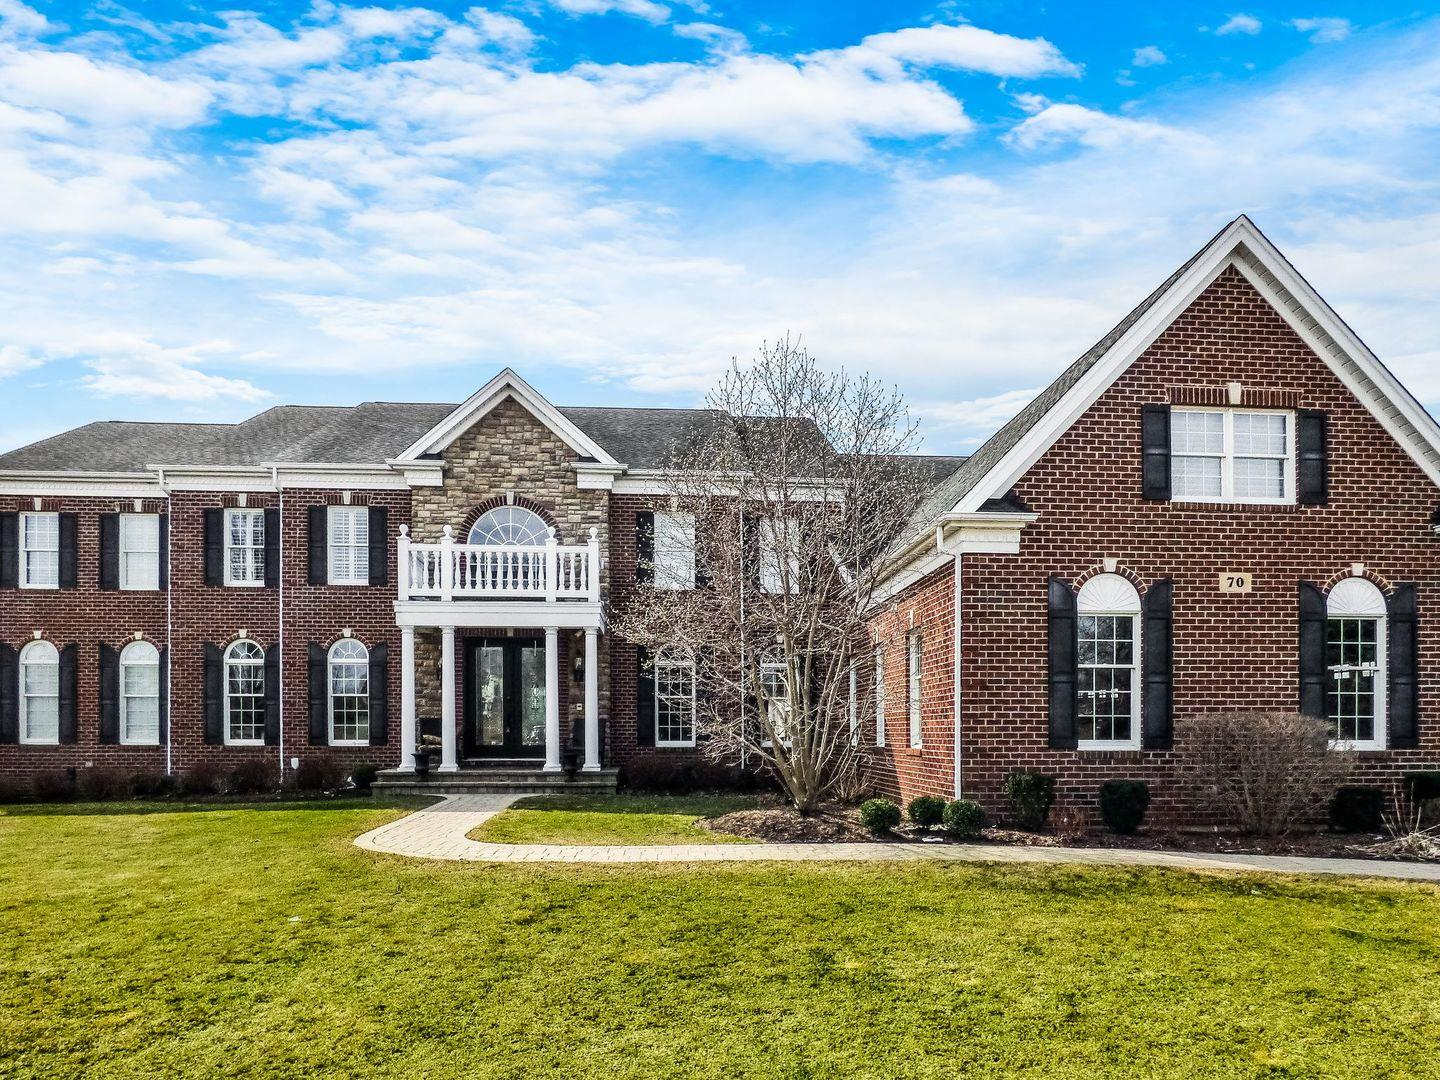 70 Tournament Drive N, Hawthorn Woods, IL 60047 - #: 11001516